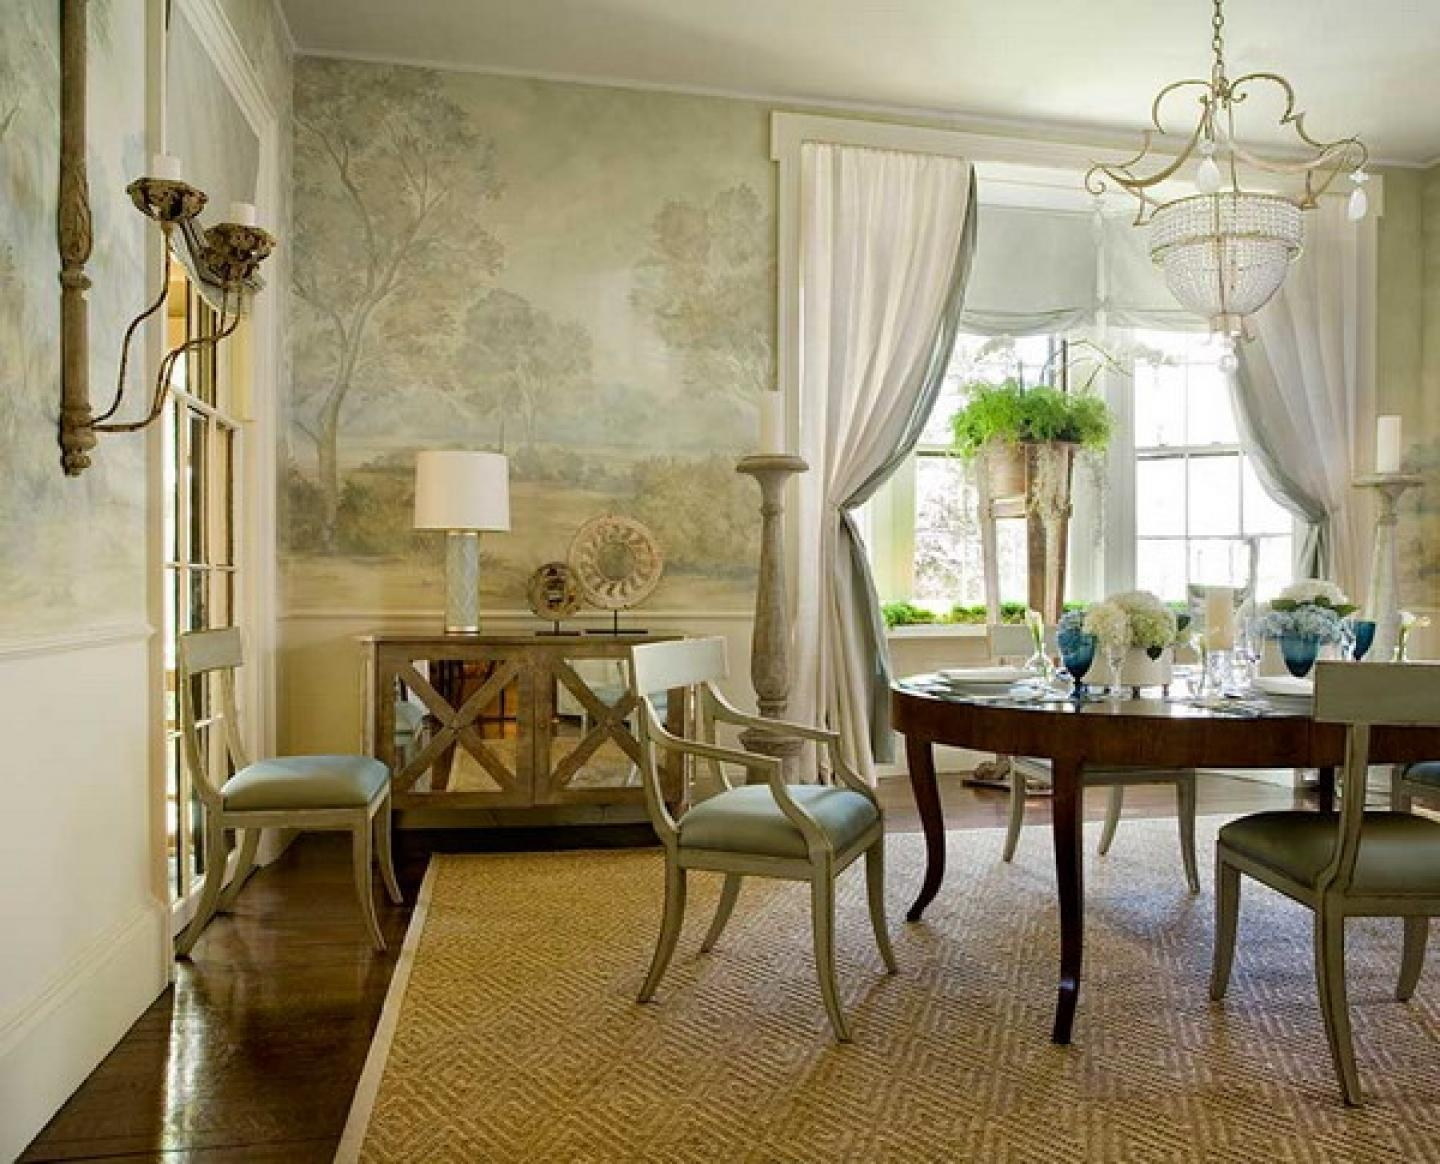 20 collection of formal dining room wall art wall art ideas for Nursing home dining room ideas